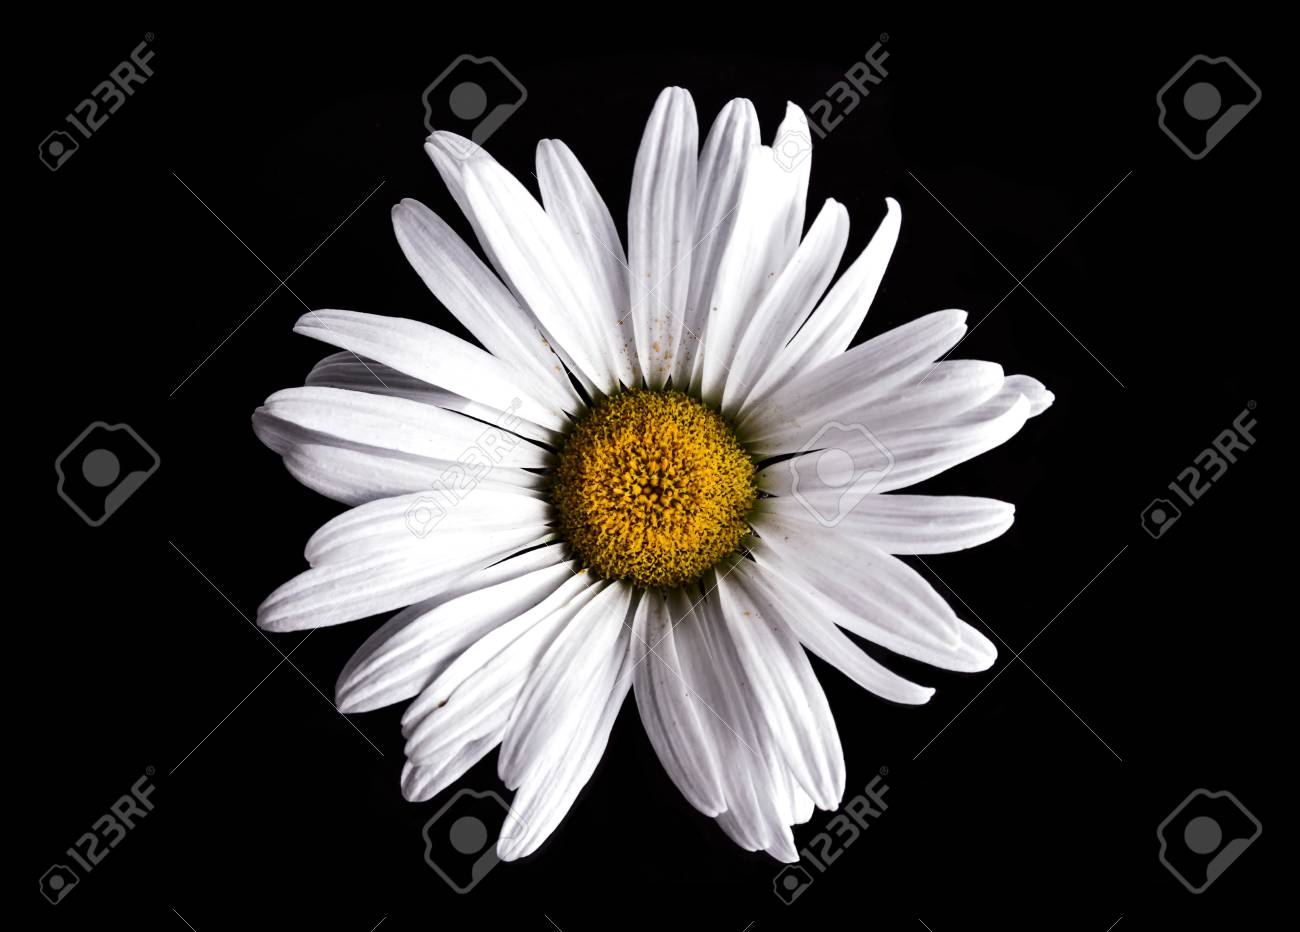 Close up of a white daisy flower on black background stock photo close up of a white daisy flower on black background stock photo 44237542 izmirmasajfo